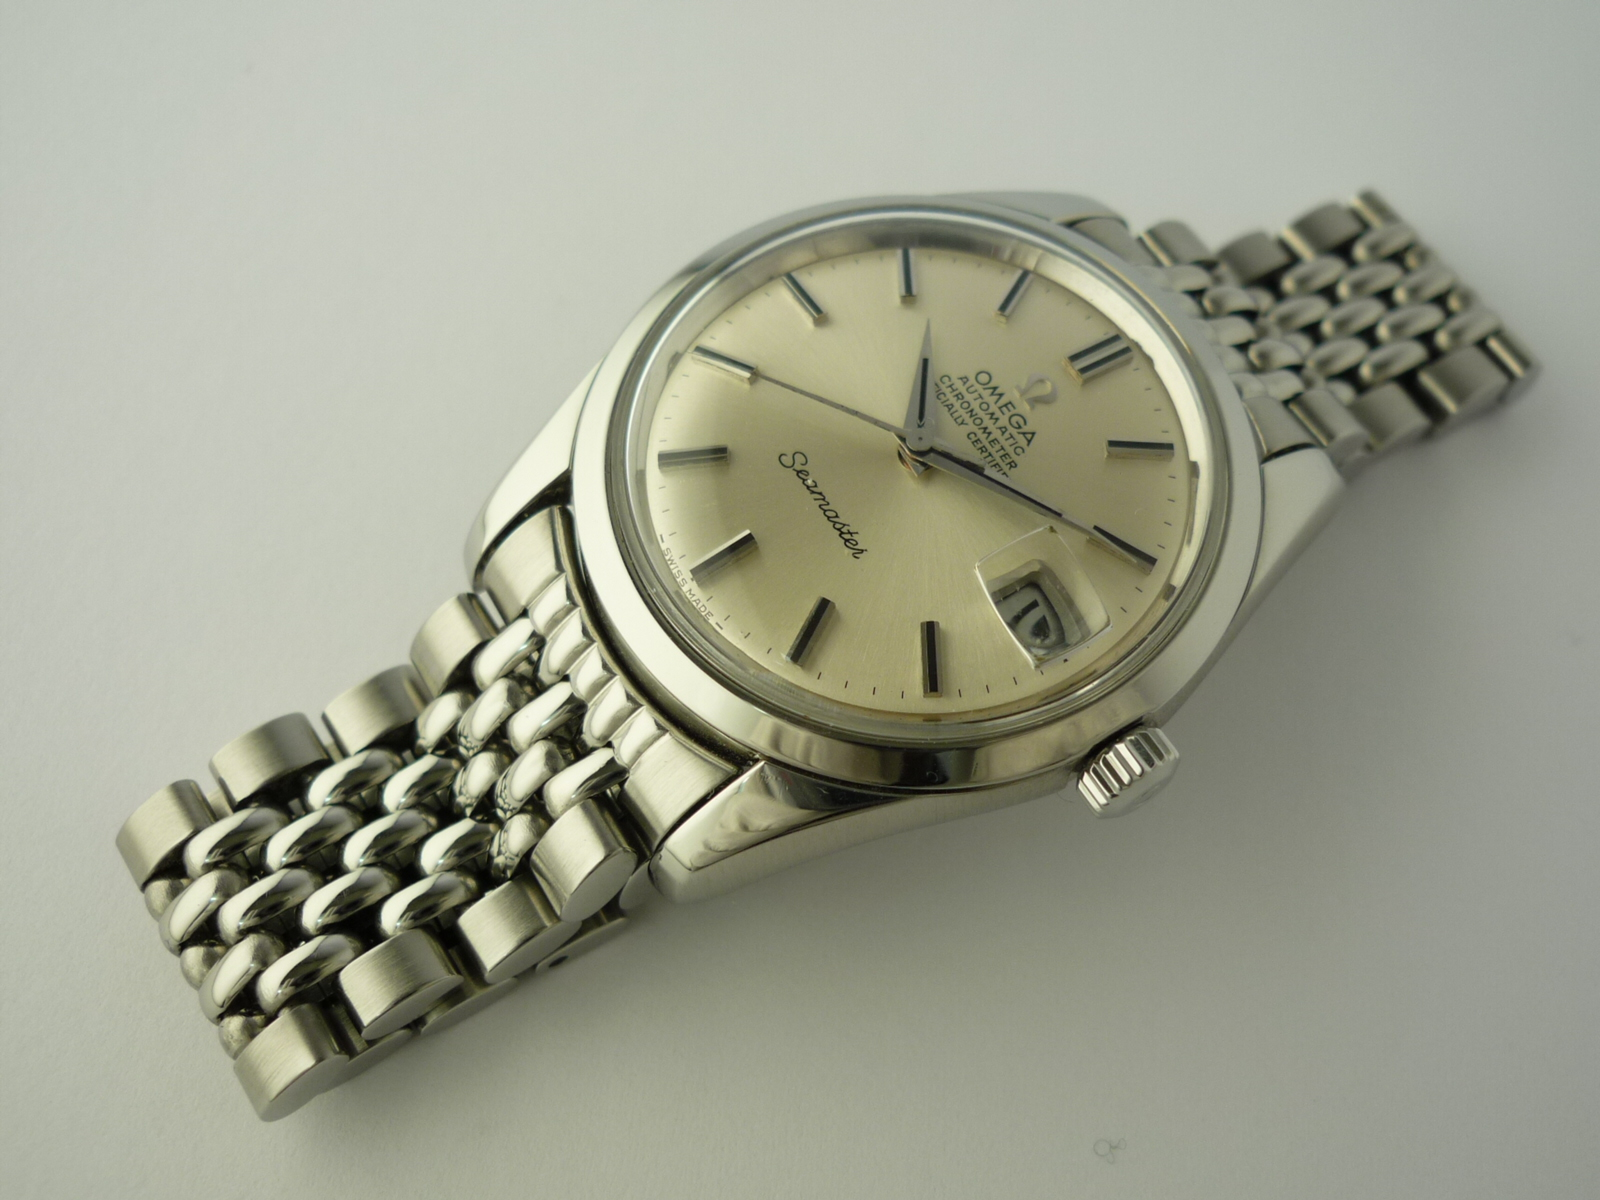 Omega Seamaster Chronometer watch ref 166010 (1970)